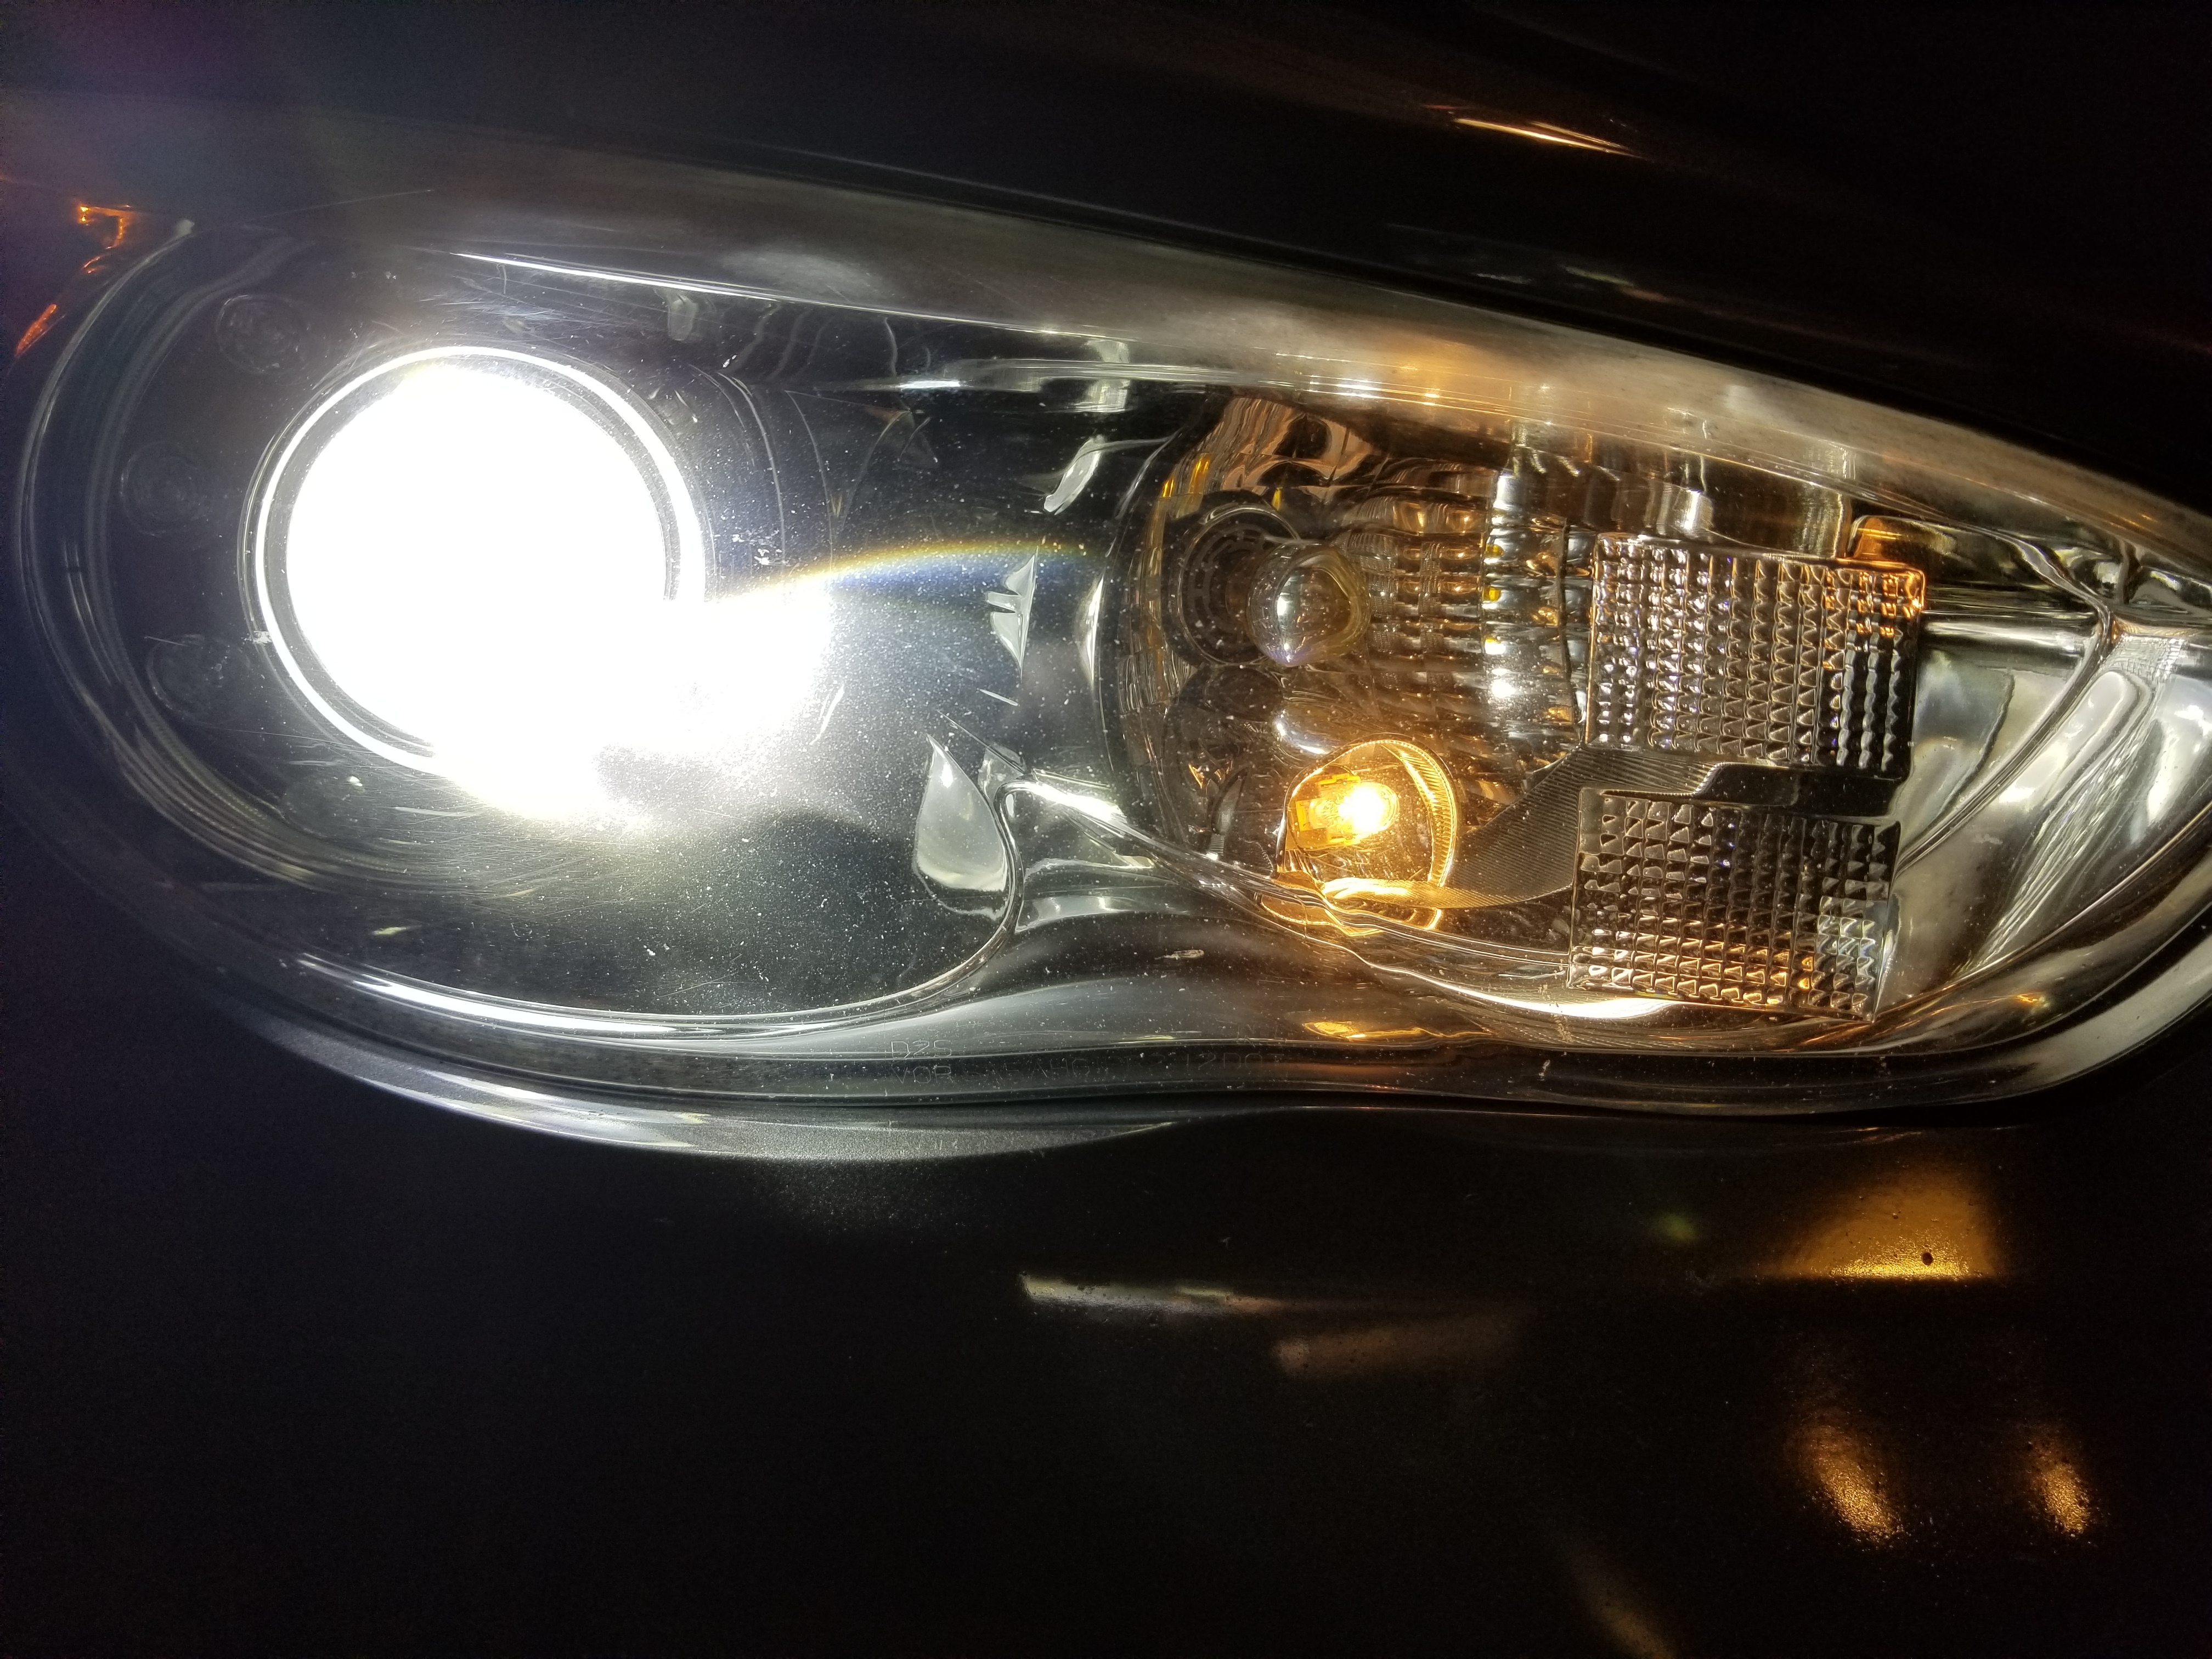 2013 Jx35 Need High Beam Relay Location Both Low Beams Work Only M45 Fog Light Bulb Wiring Diagram 15222032870485558790128019872202